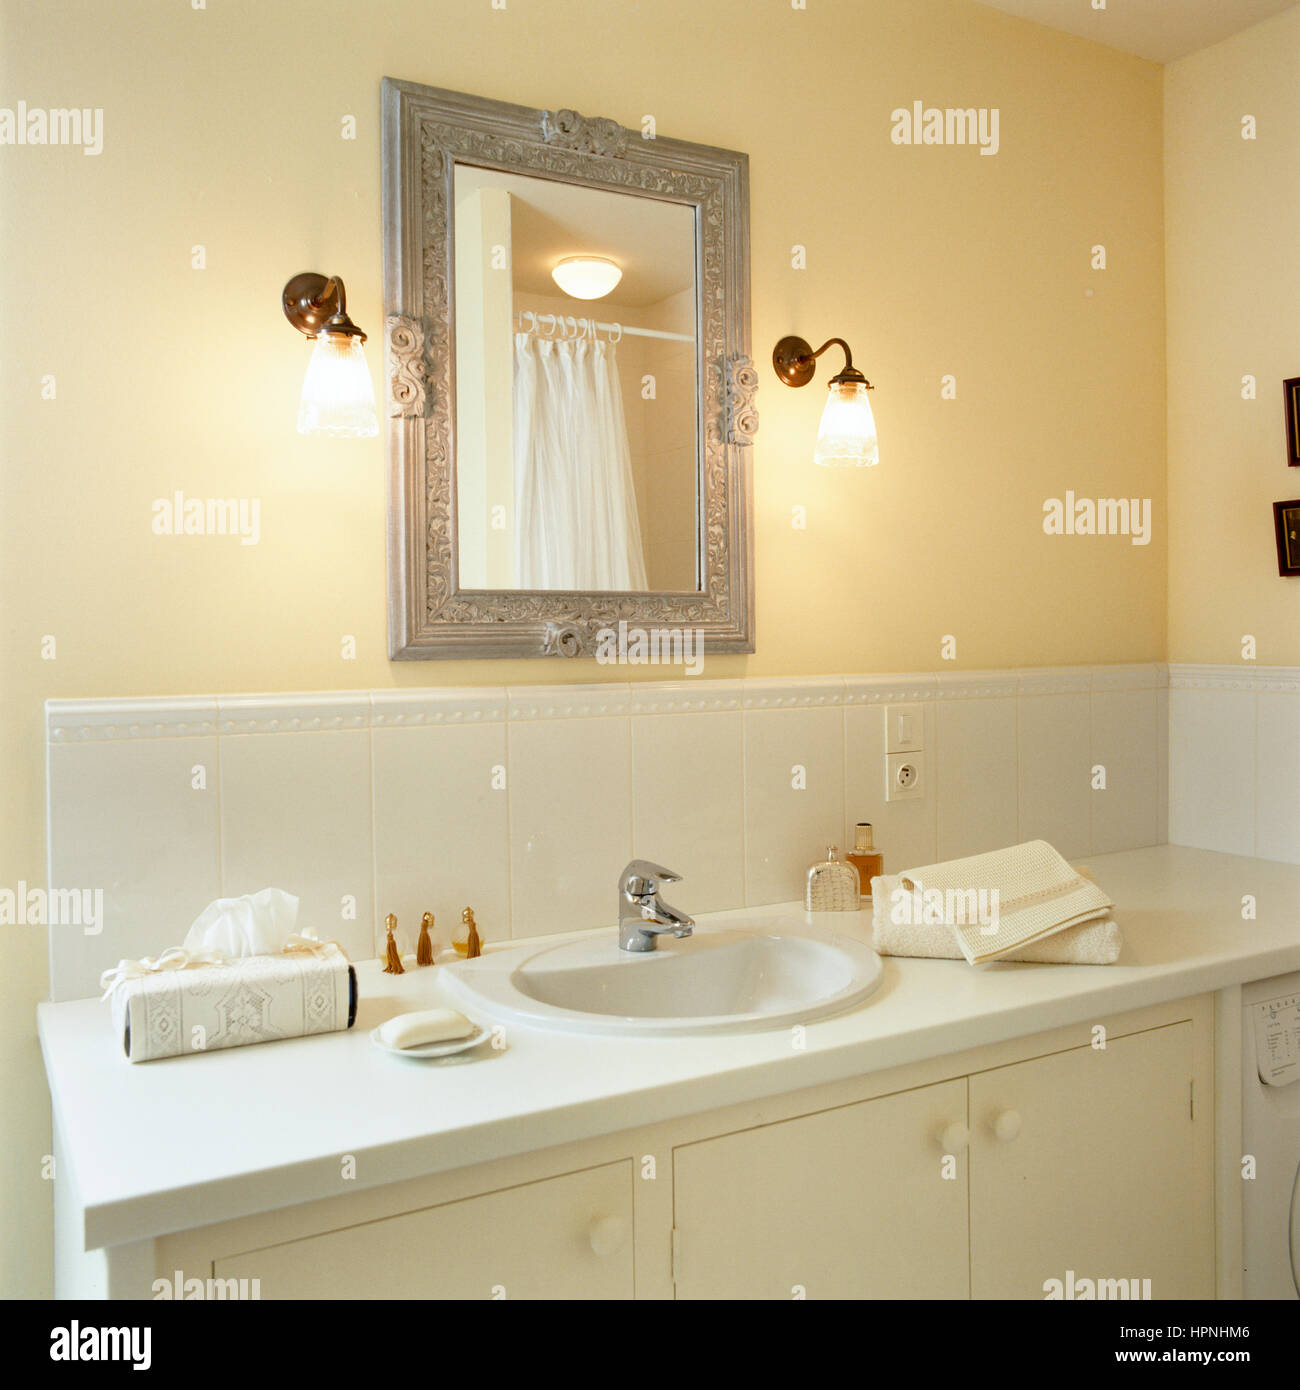 A bathroom sink with a mirror. - Stock Image